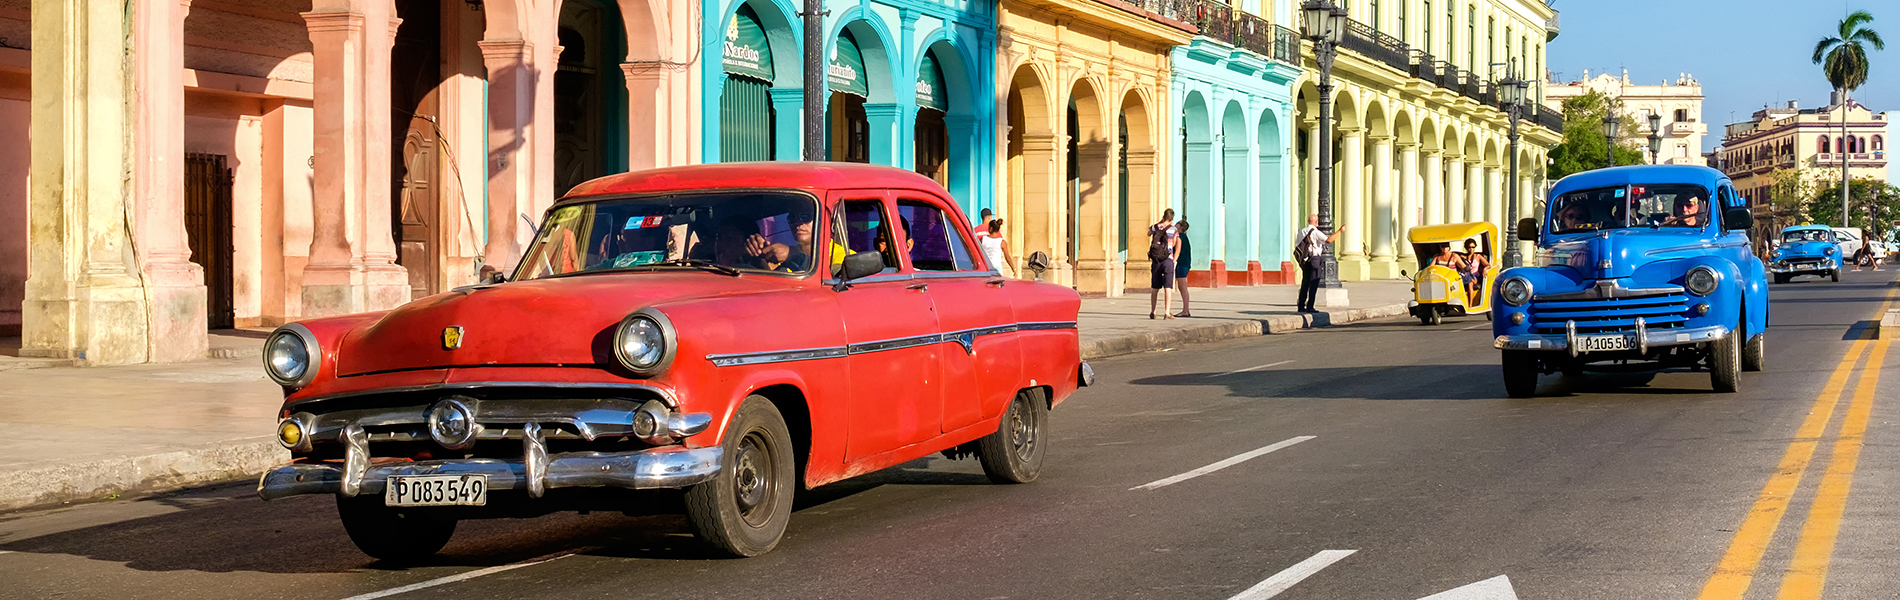 2017 Travel To Cuba Can Americans Travel To Cuba It S Complicated Smartertravel